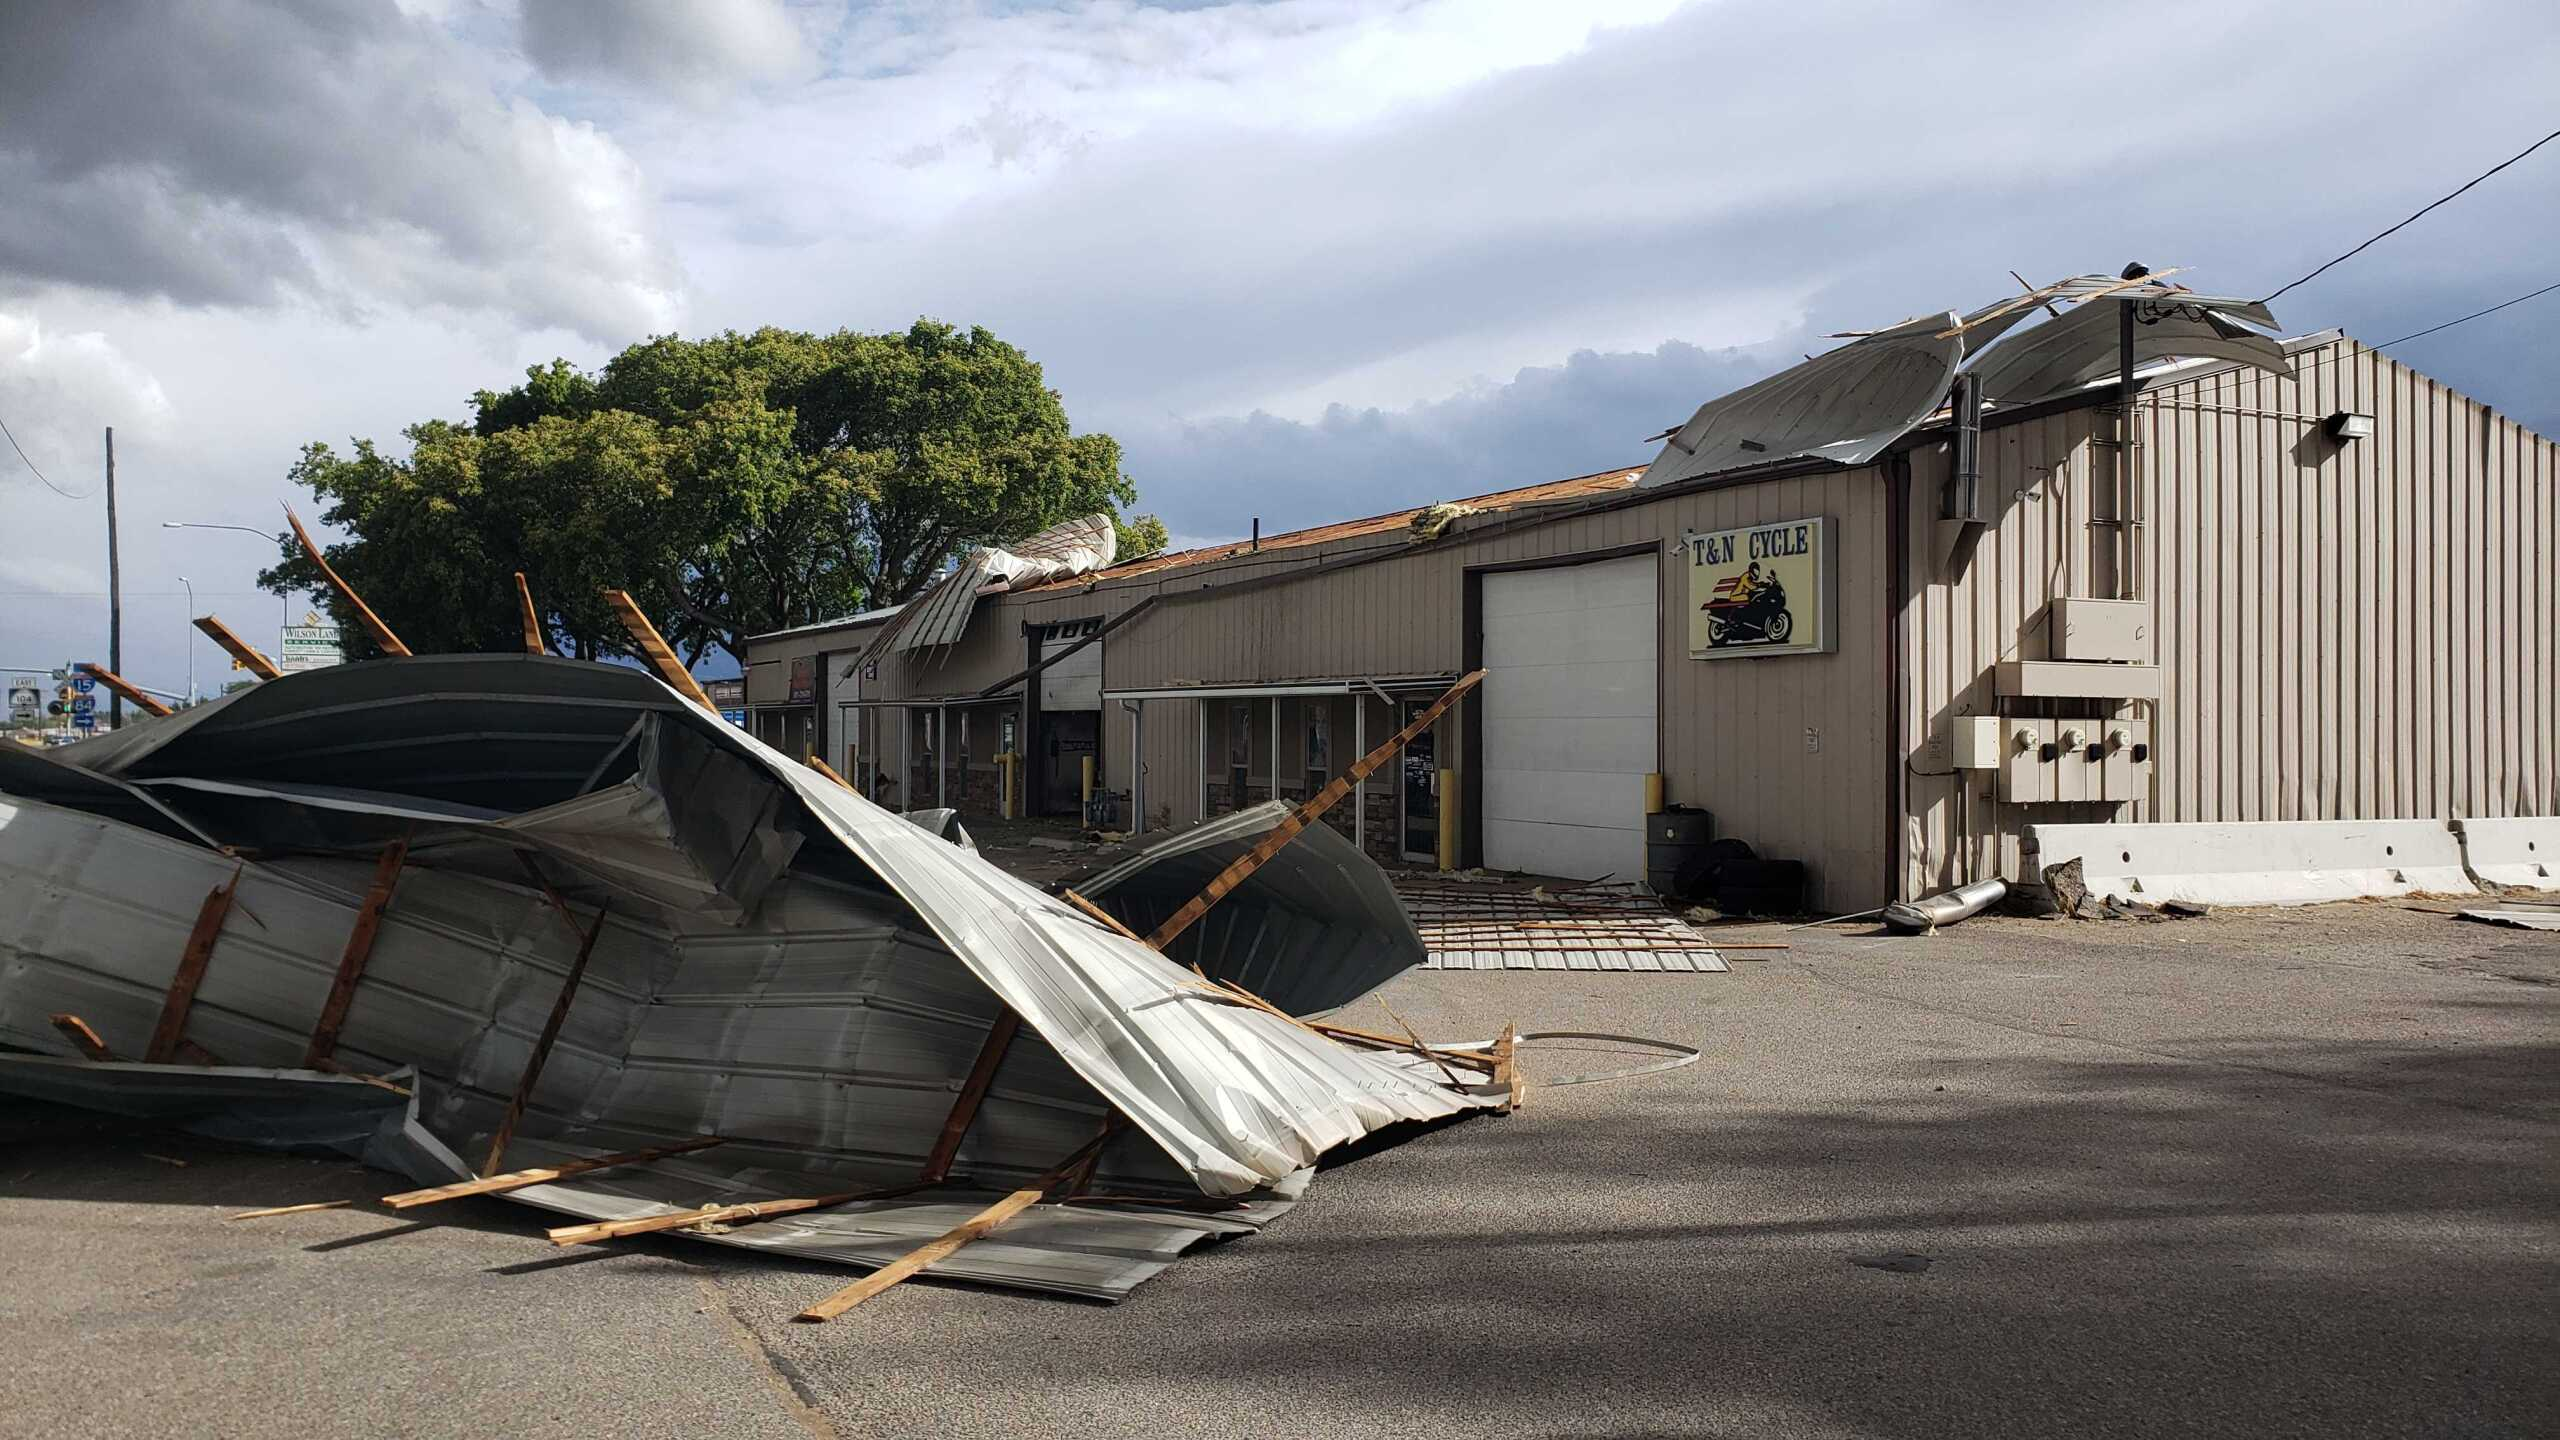 Roof ripped off T and N Cycle in Ogden2.jpg